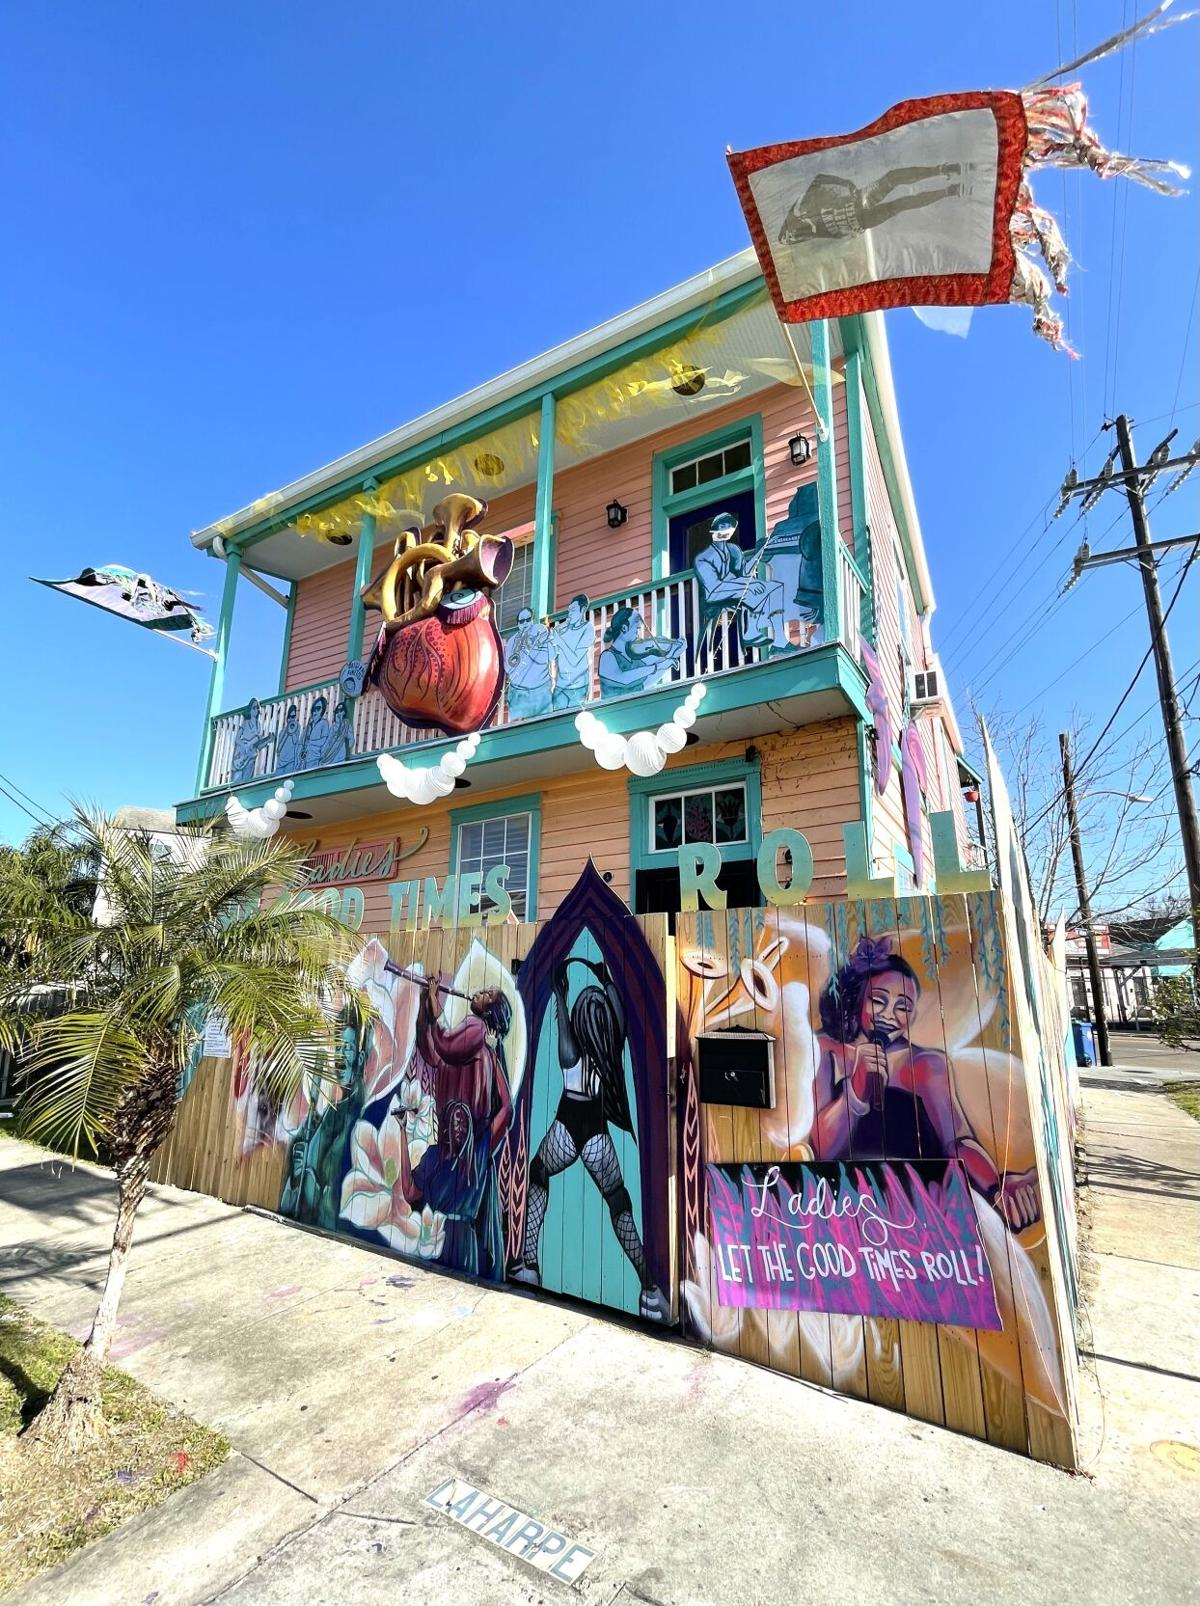 'New Orleans Queens of Sound and Soul' Mardi Gras house float has become a permanent tribute to the women of New Orleans music - 1.jpeg